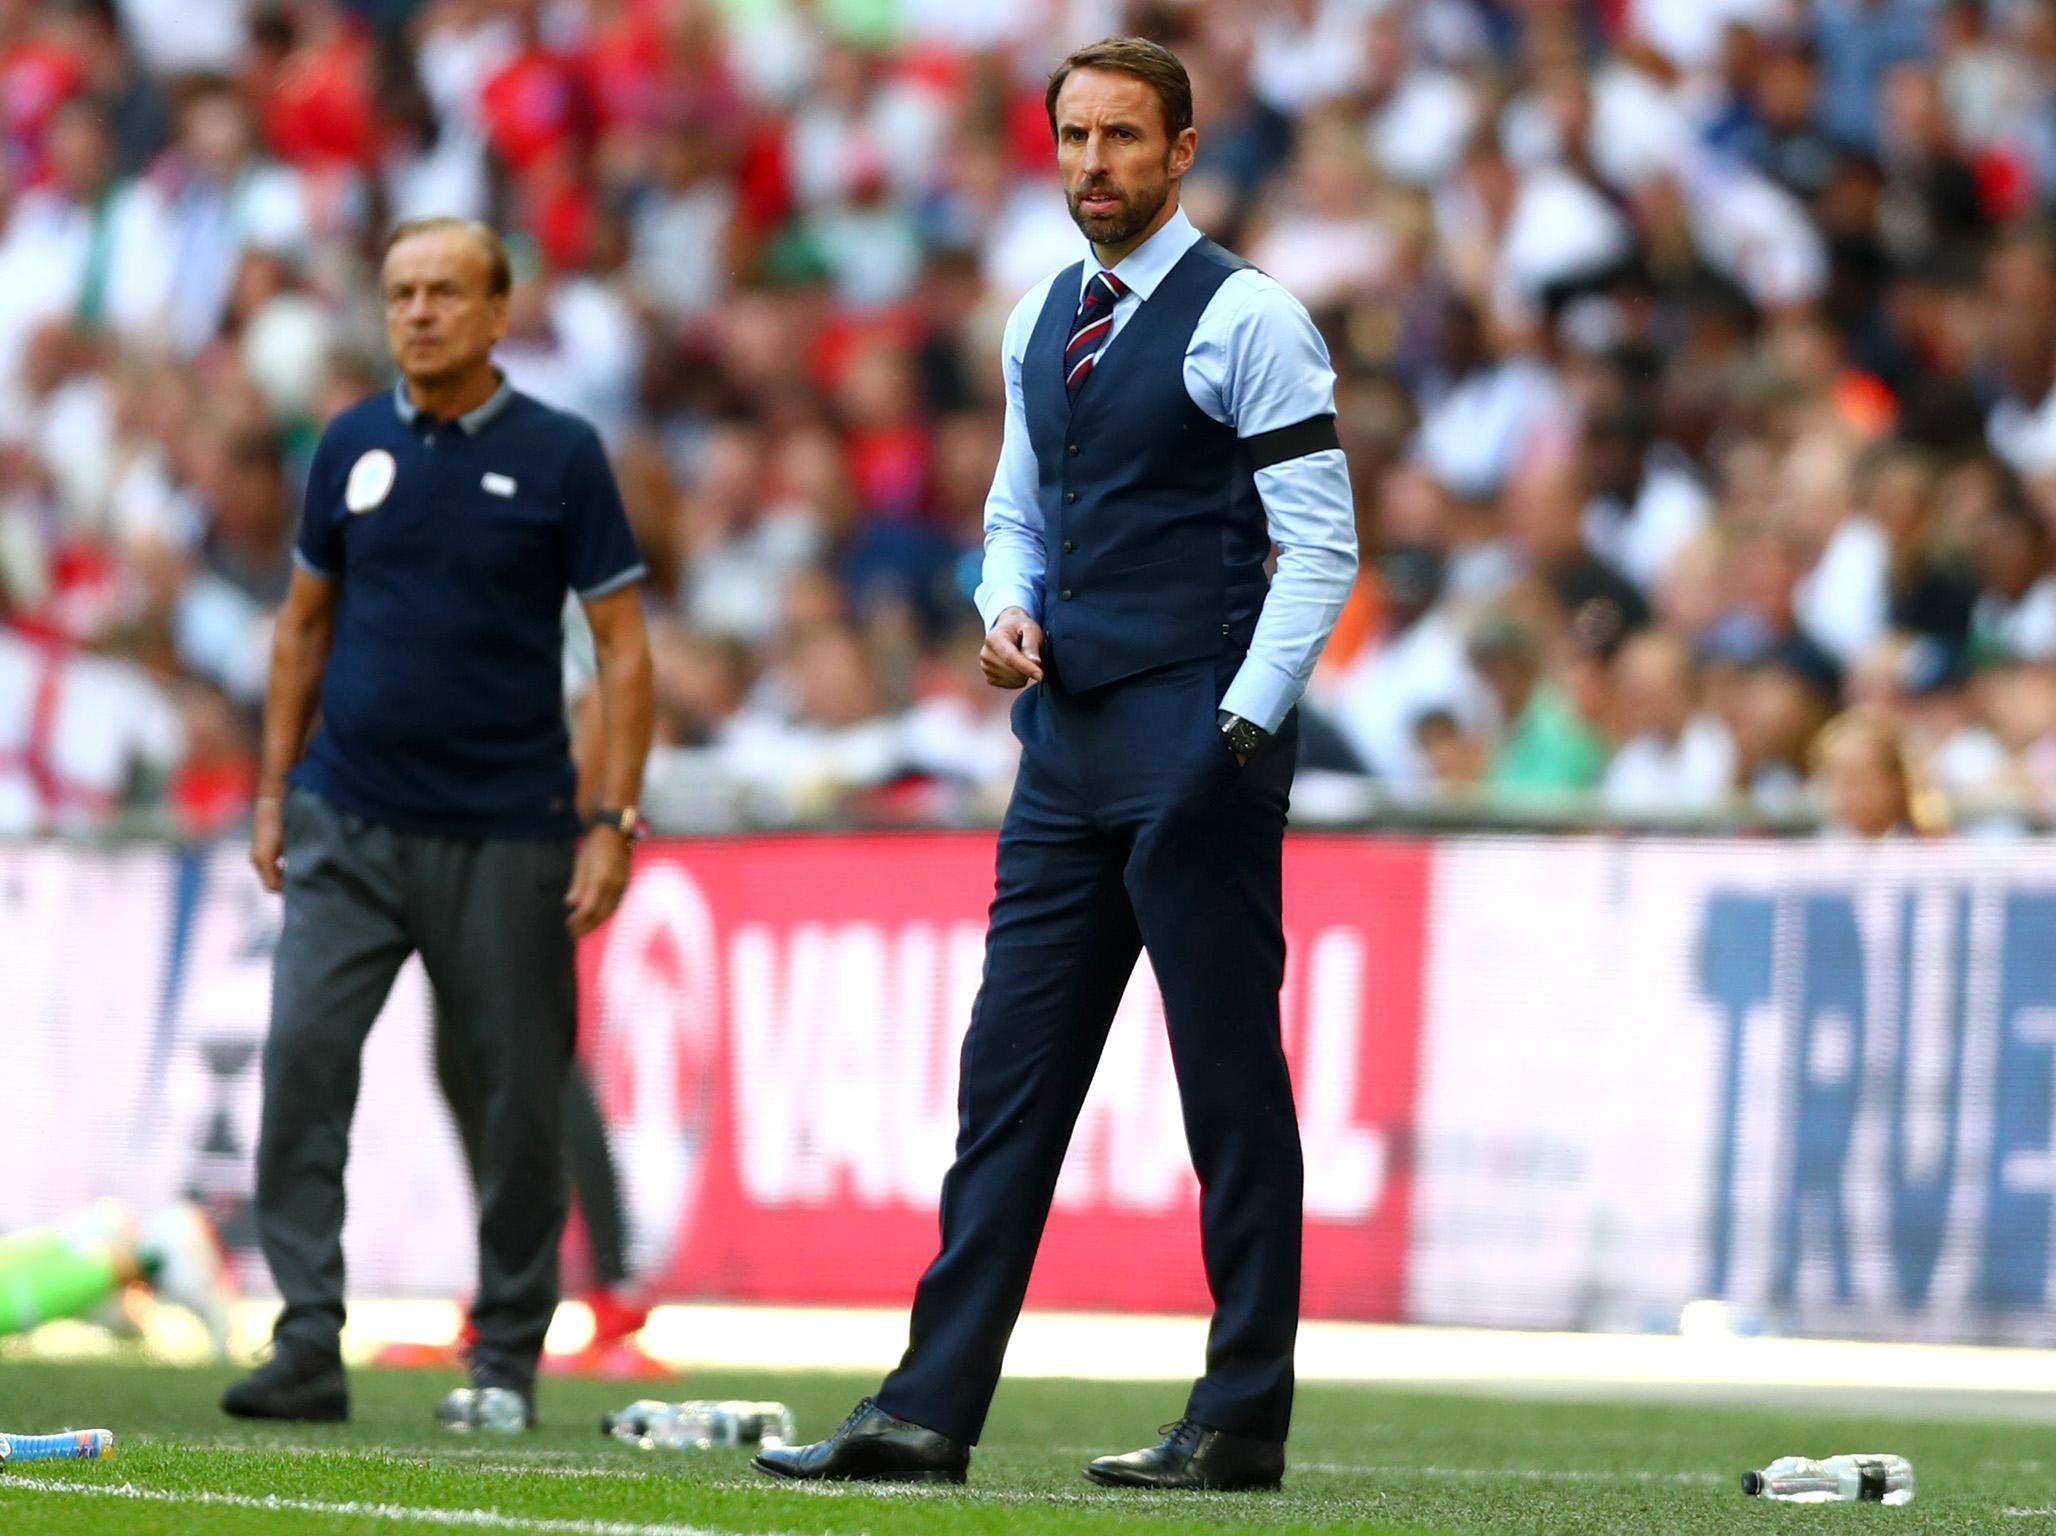 World Cup 2018: How Gareth Southgate built his England team